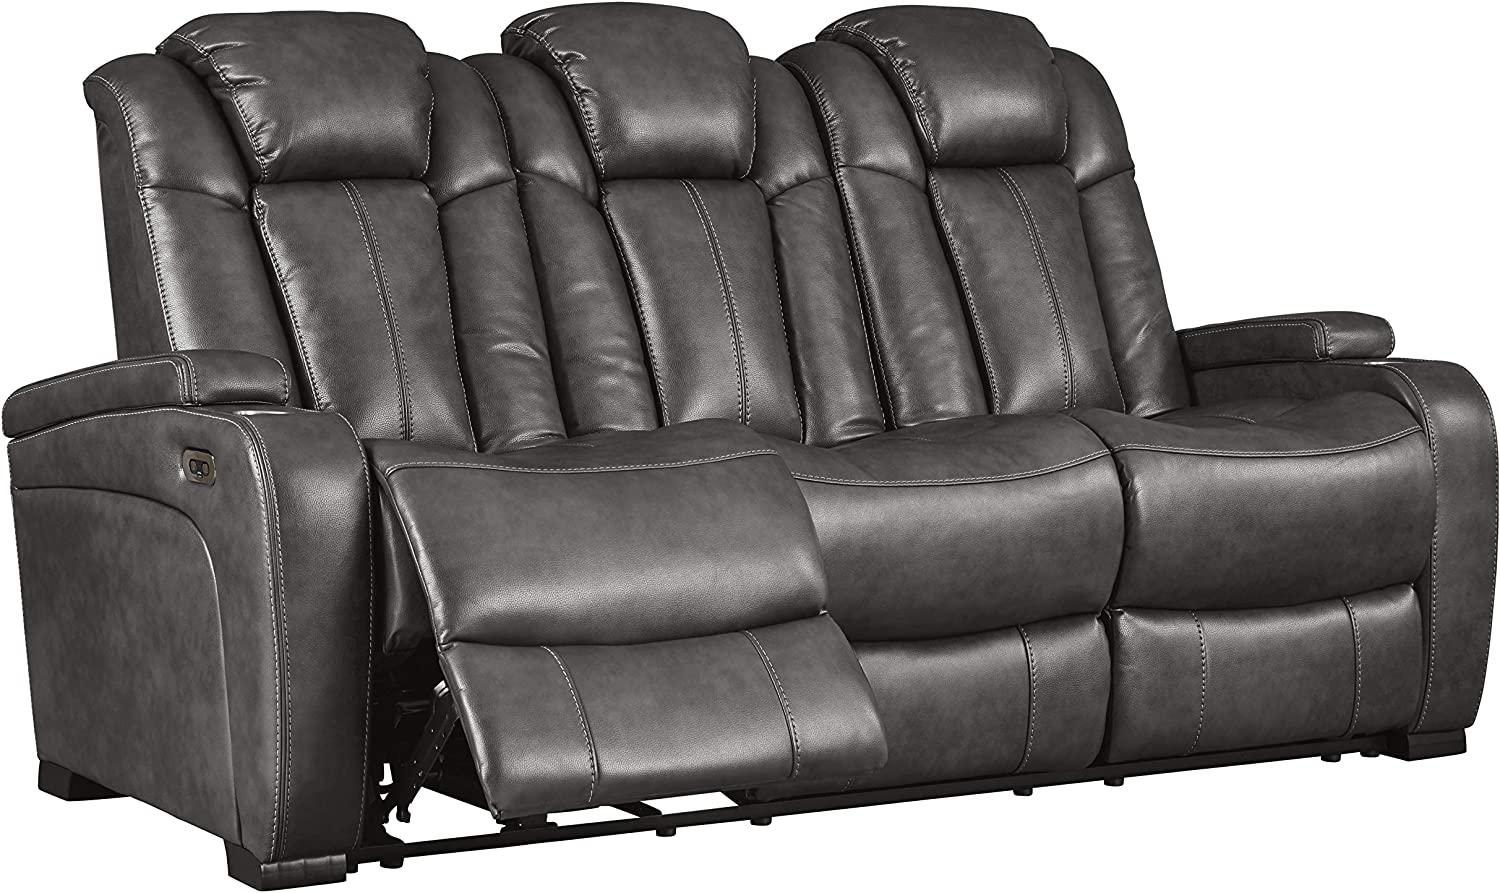 Top 7 Most Comfortable Reclining Sofa [ Buying Guide-2021 ] 6